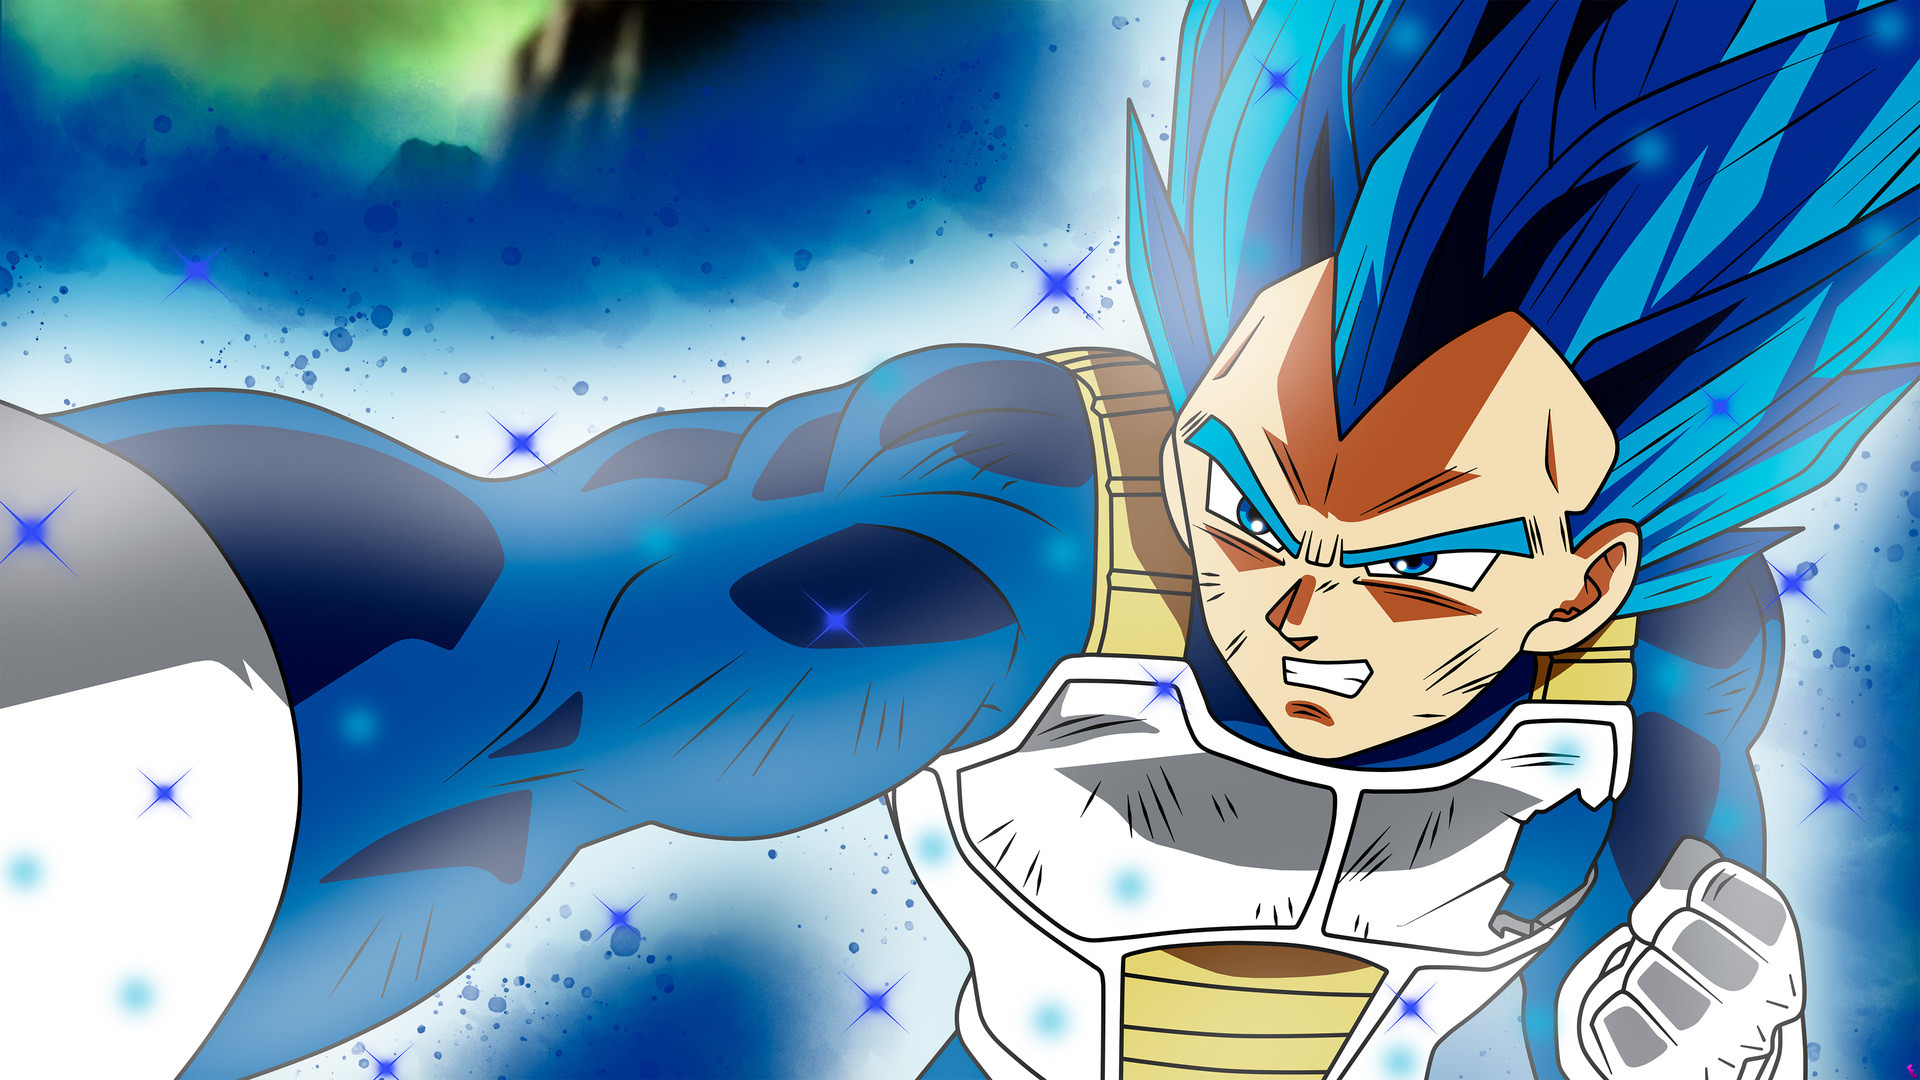 1920x1080 anime-dragon-ball-super-vegeta-ssj-blue-full-